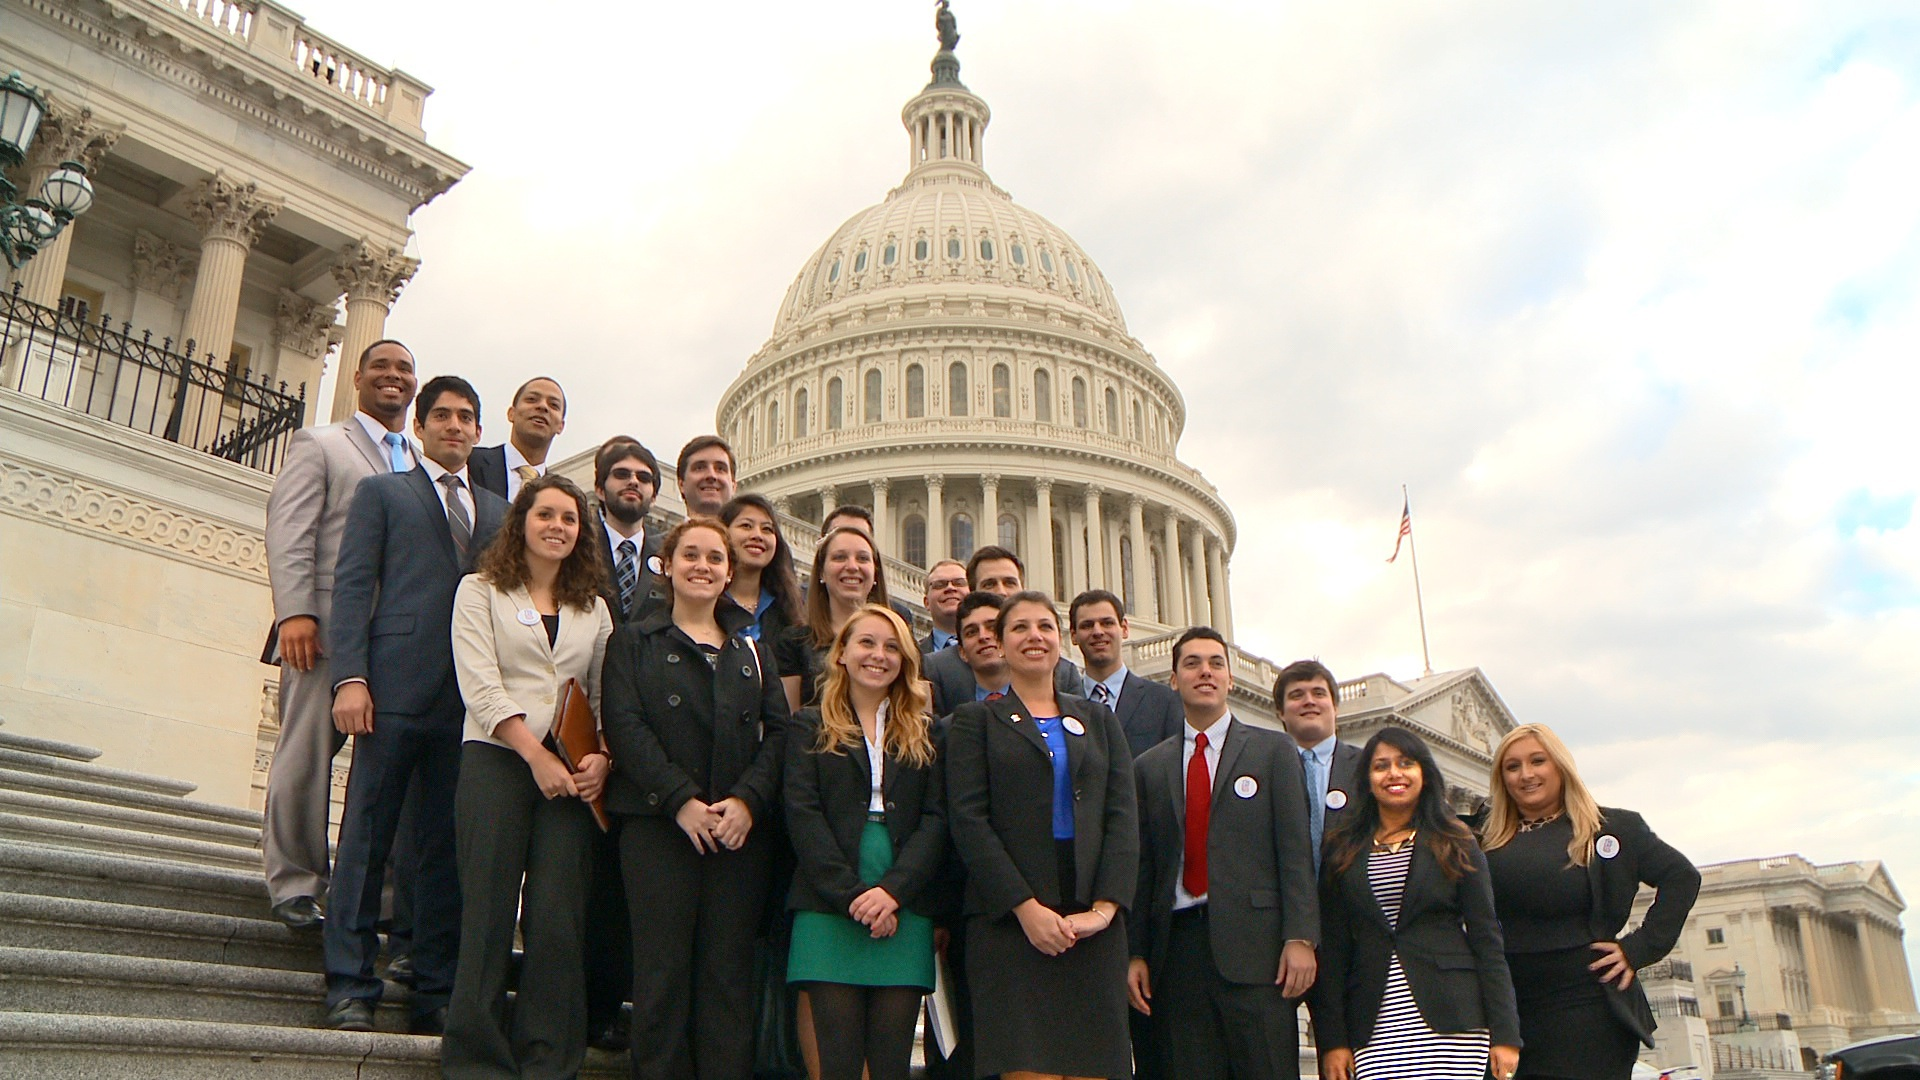 Millennials tackle the Debt on Capitol Hill